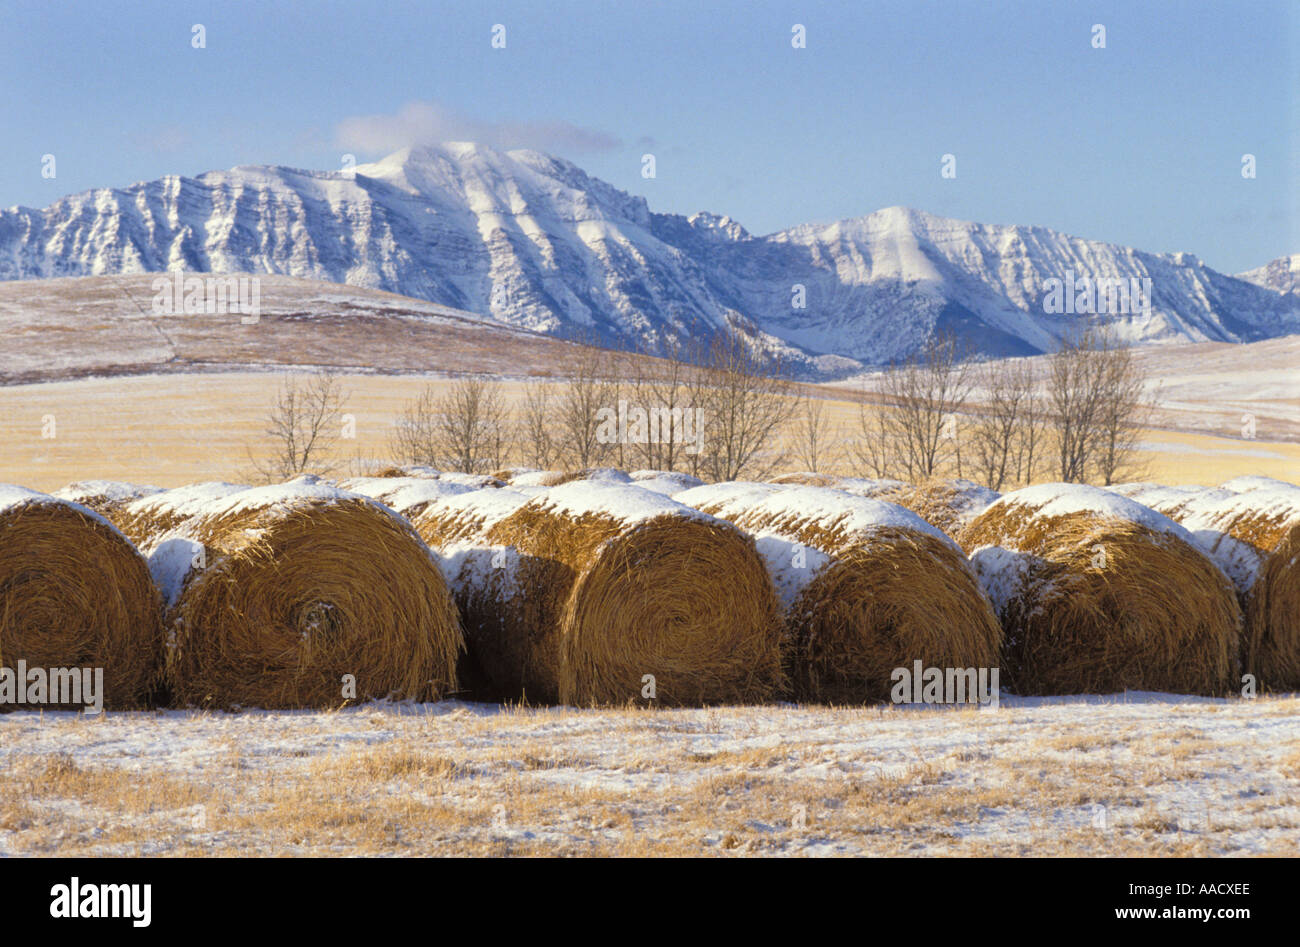 Straw bales in foothills of Rocky Mountains Alberta Canada - Stock Image